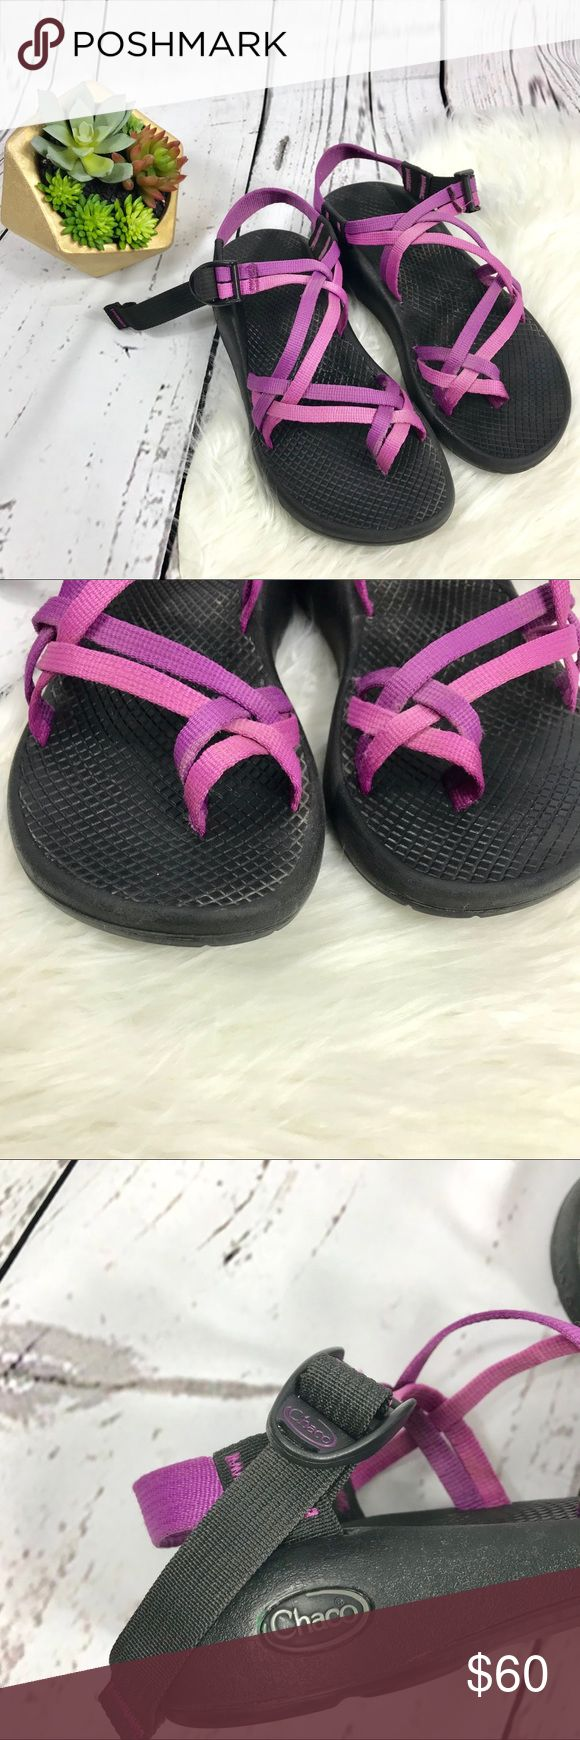 Chaco Shoes size 6. Purple pink Purple/pink Chaco Sandals.   They are in good under condition!   Size 6. Chaco Shoes Sandals